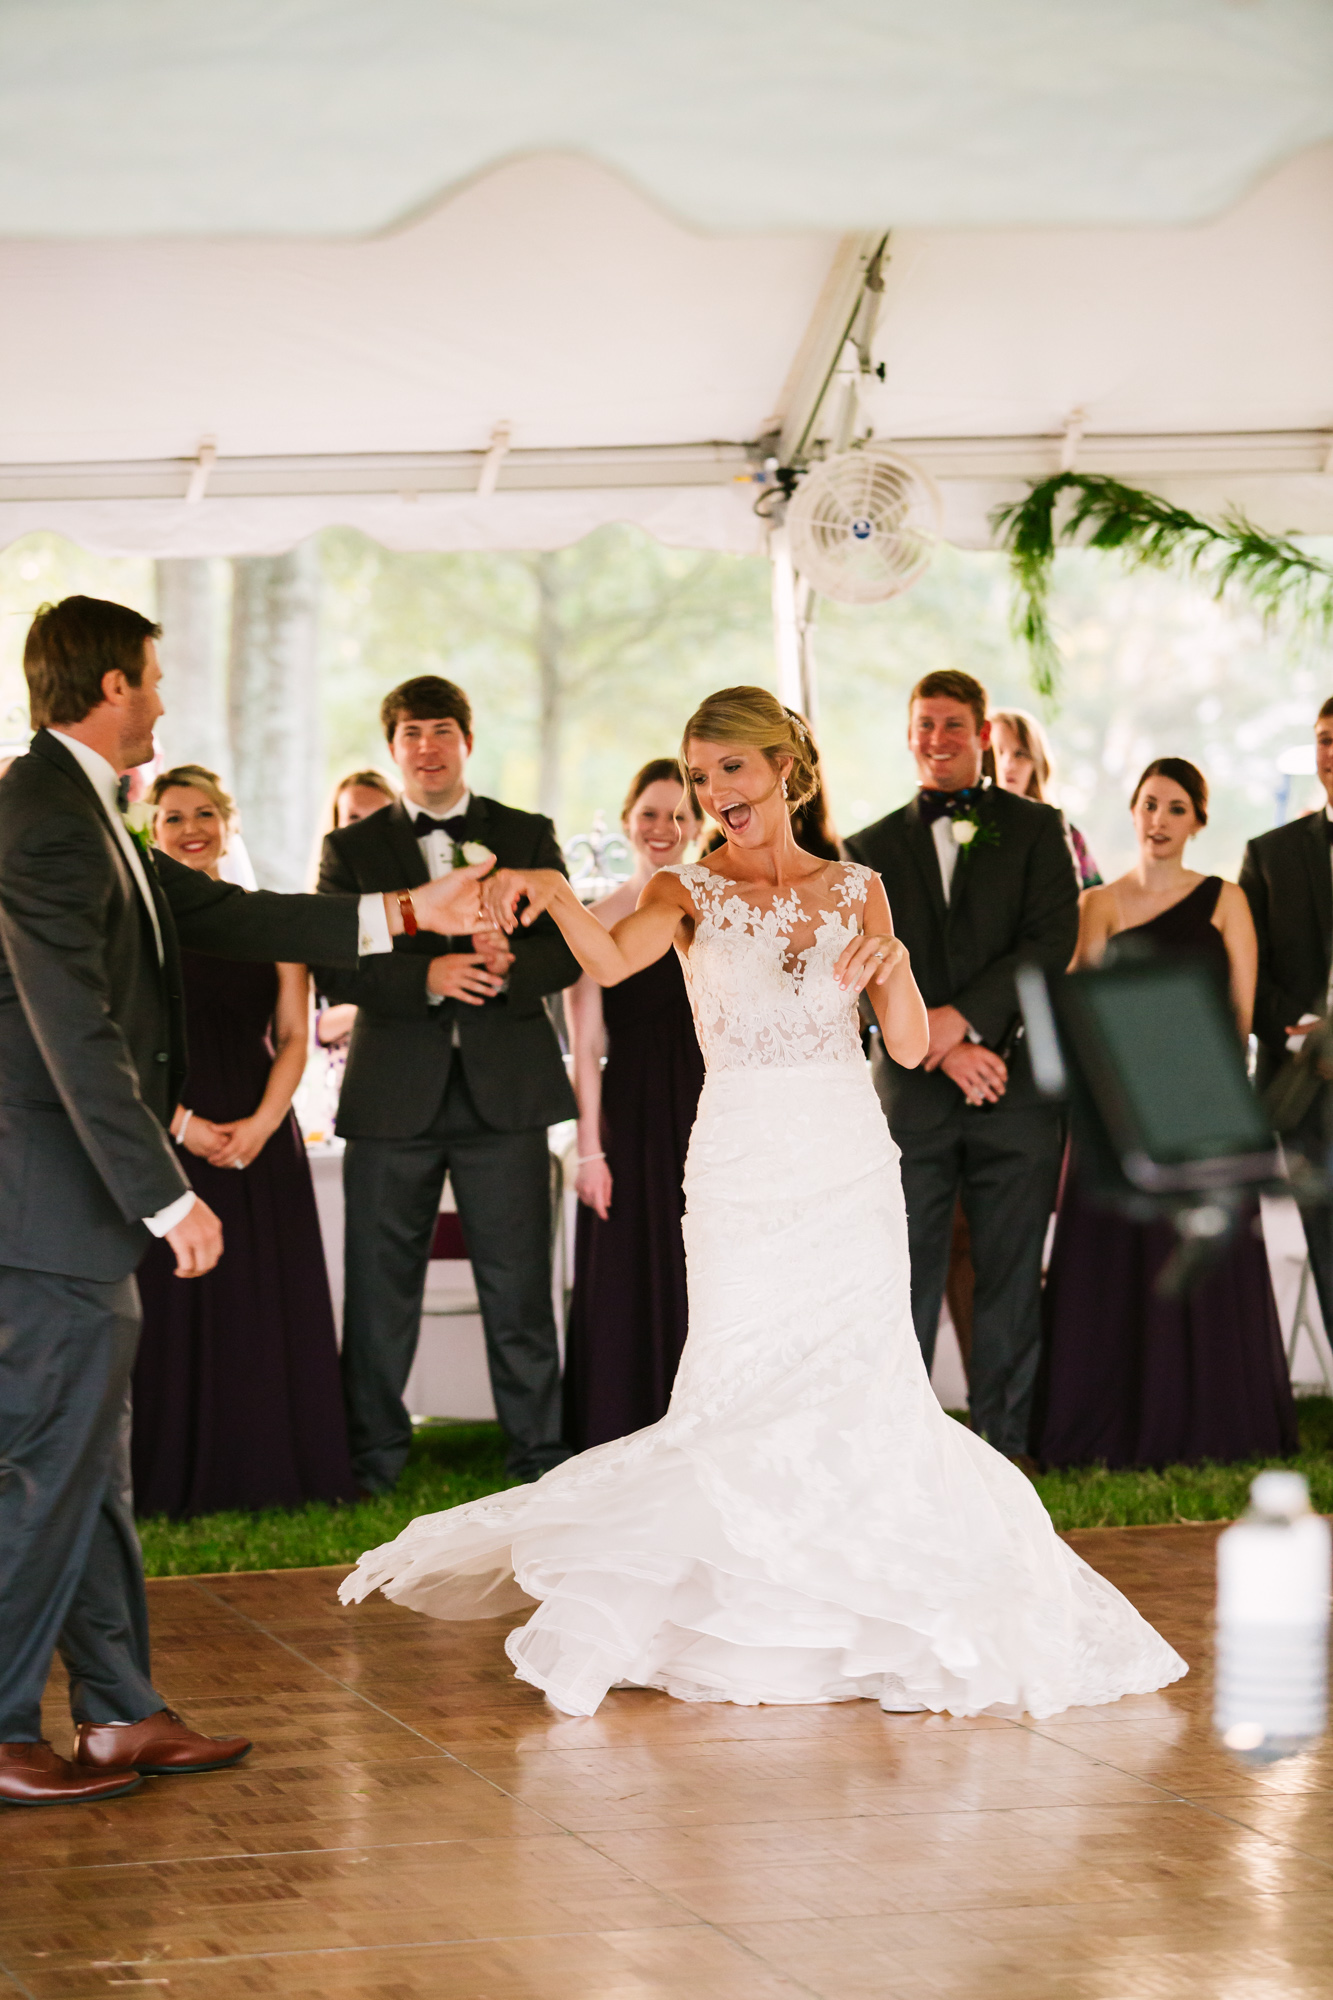 Waynesville, NC Wedding Photography | Bride and Groom First Dance